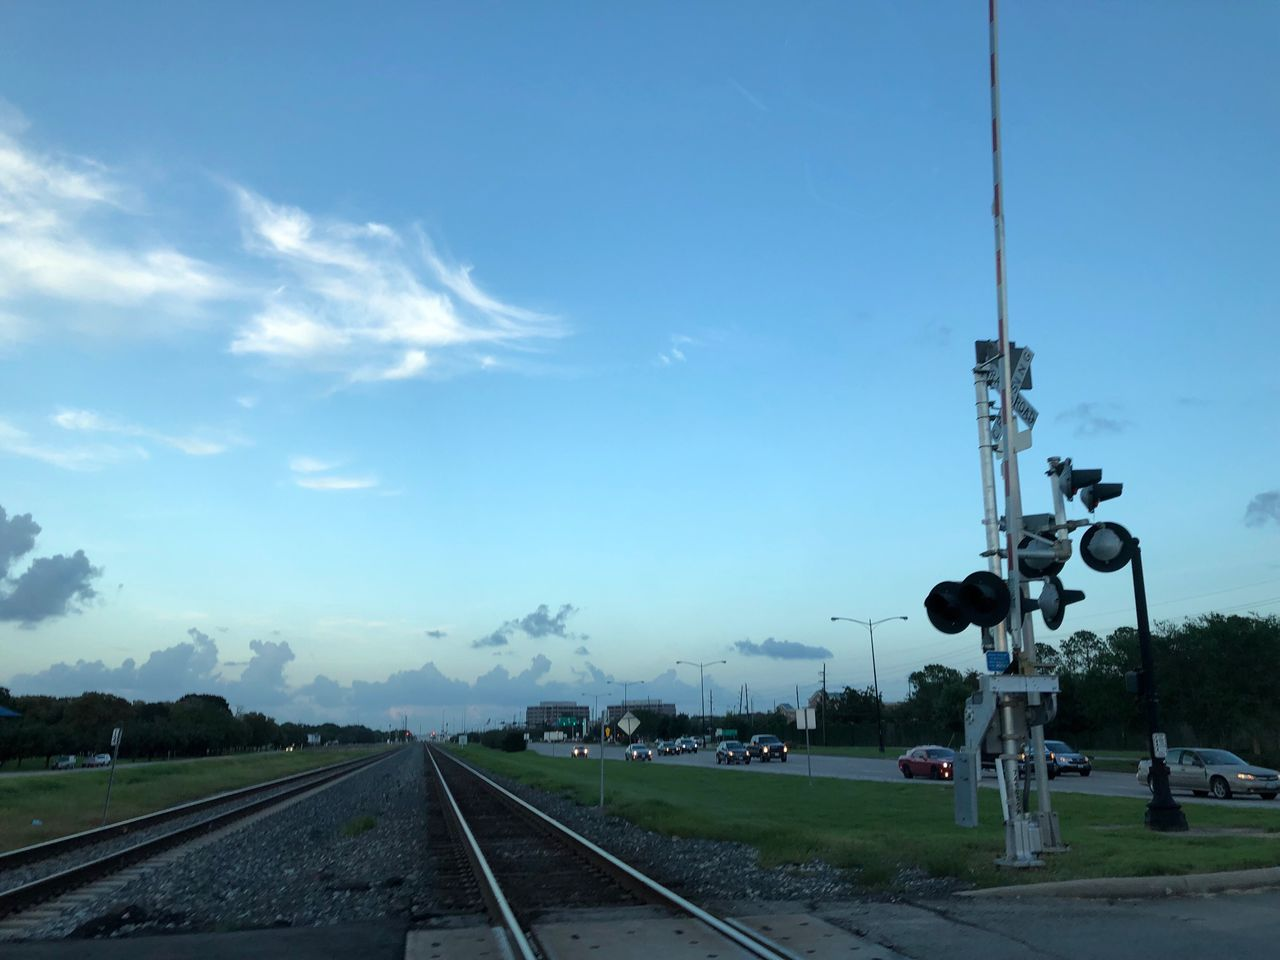 rail transportation, track, sky, railroad track, transportation, mode of transportation, signal, railway signal, nature, cloud - sky, public transportation, no people, train, day, outdoors, plant, train - vehicle, field, direction, travel